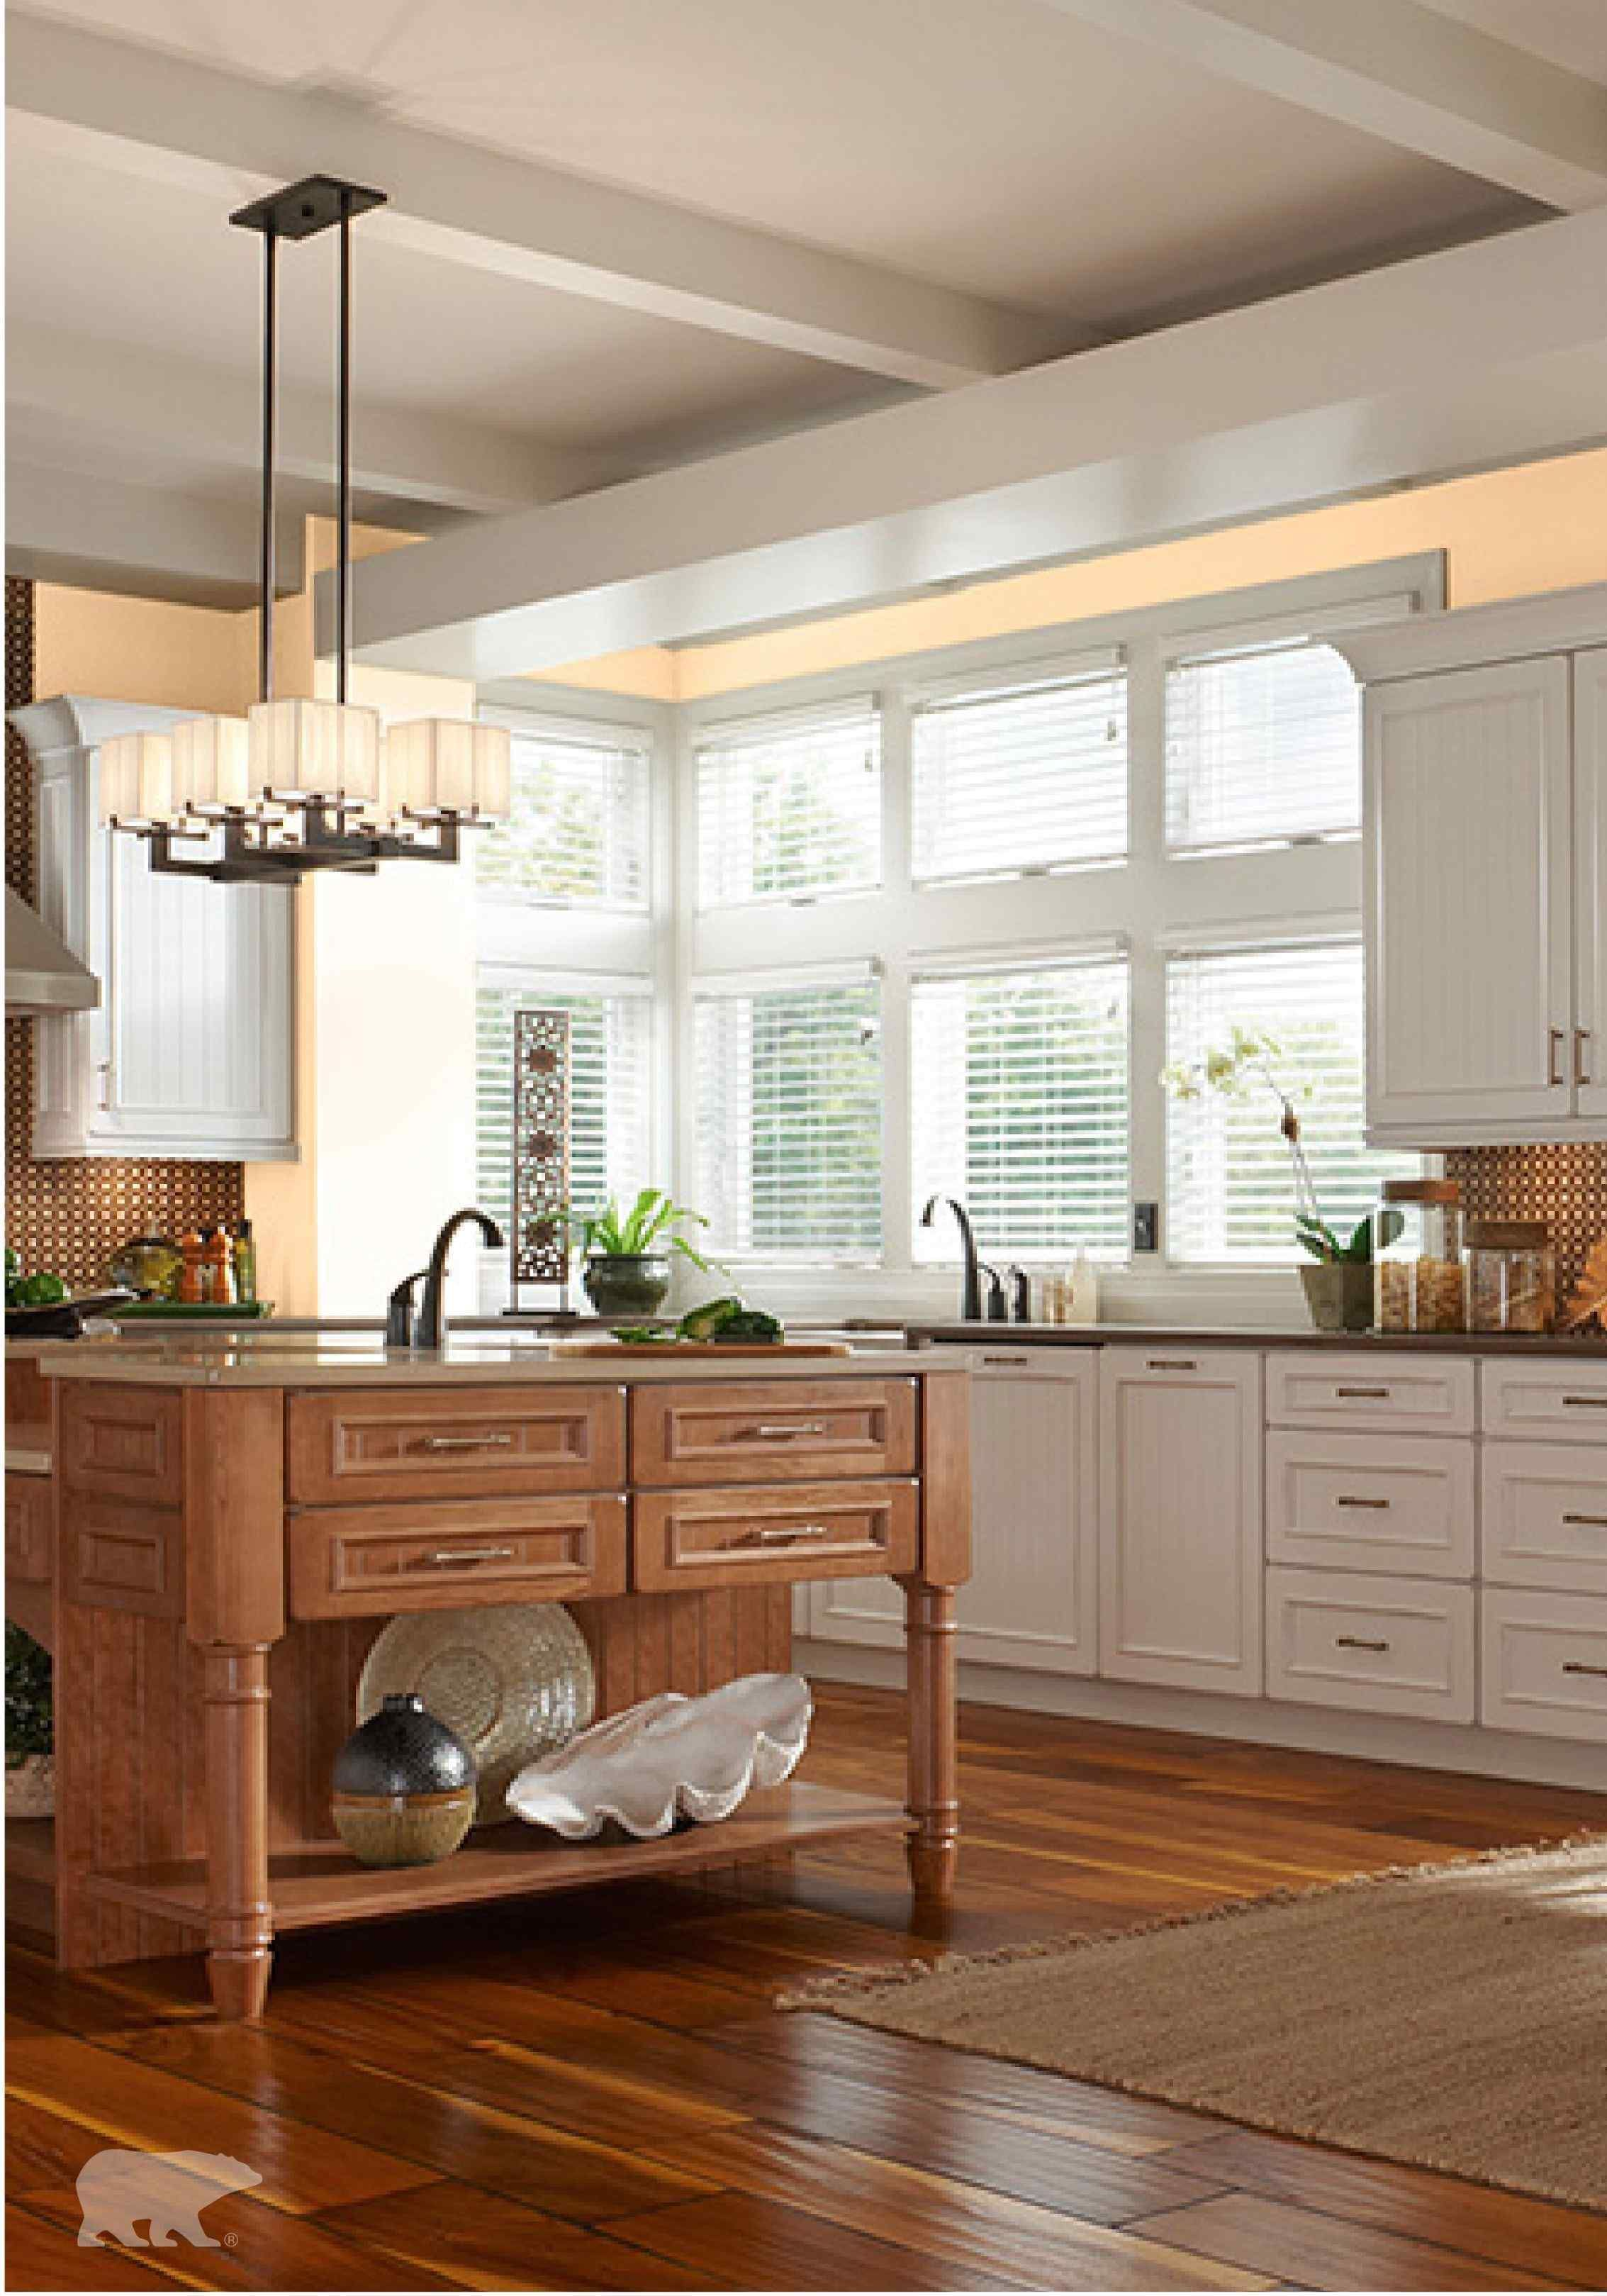 example of new behr off white paint colors kitchen cabinets to